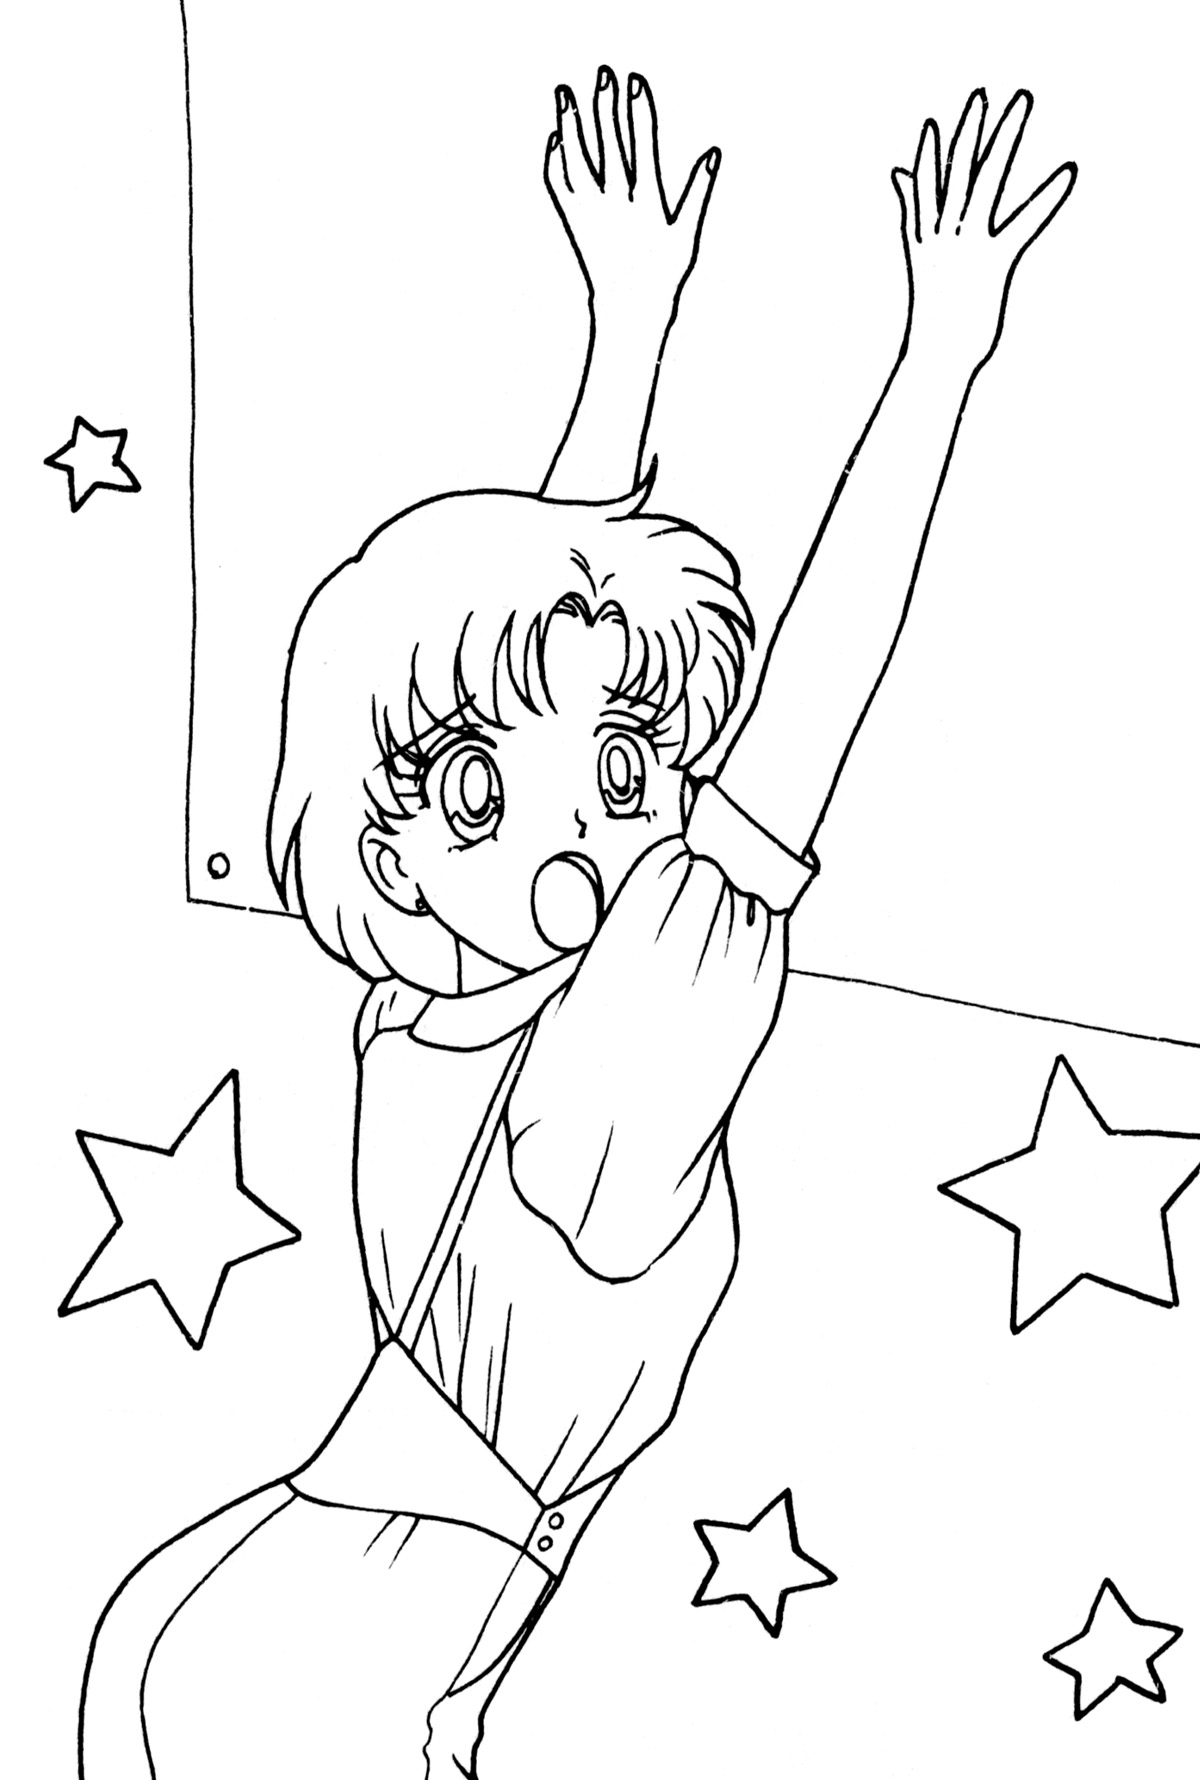 Coloring Pages Sailor Mercury Coloring Pages sailor mercury coloring pages fun color page moon coloringstar